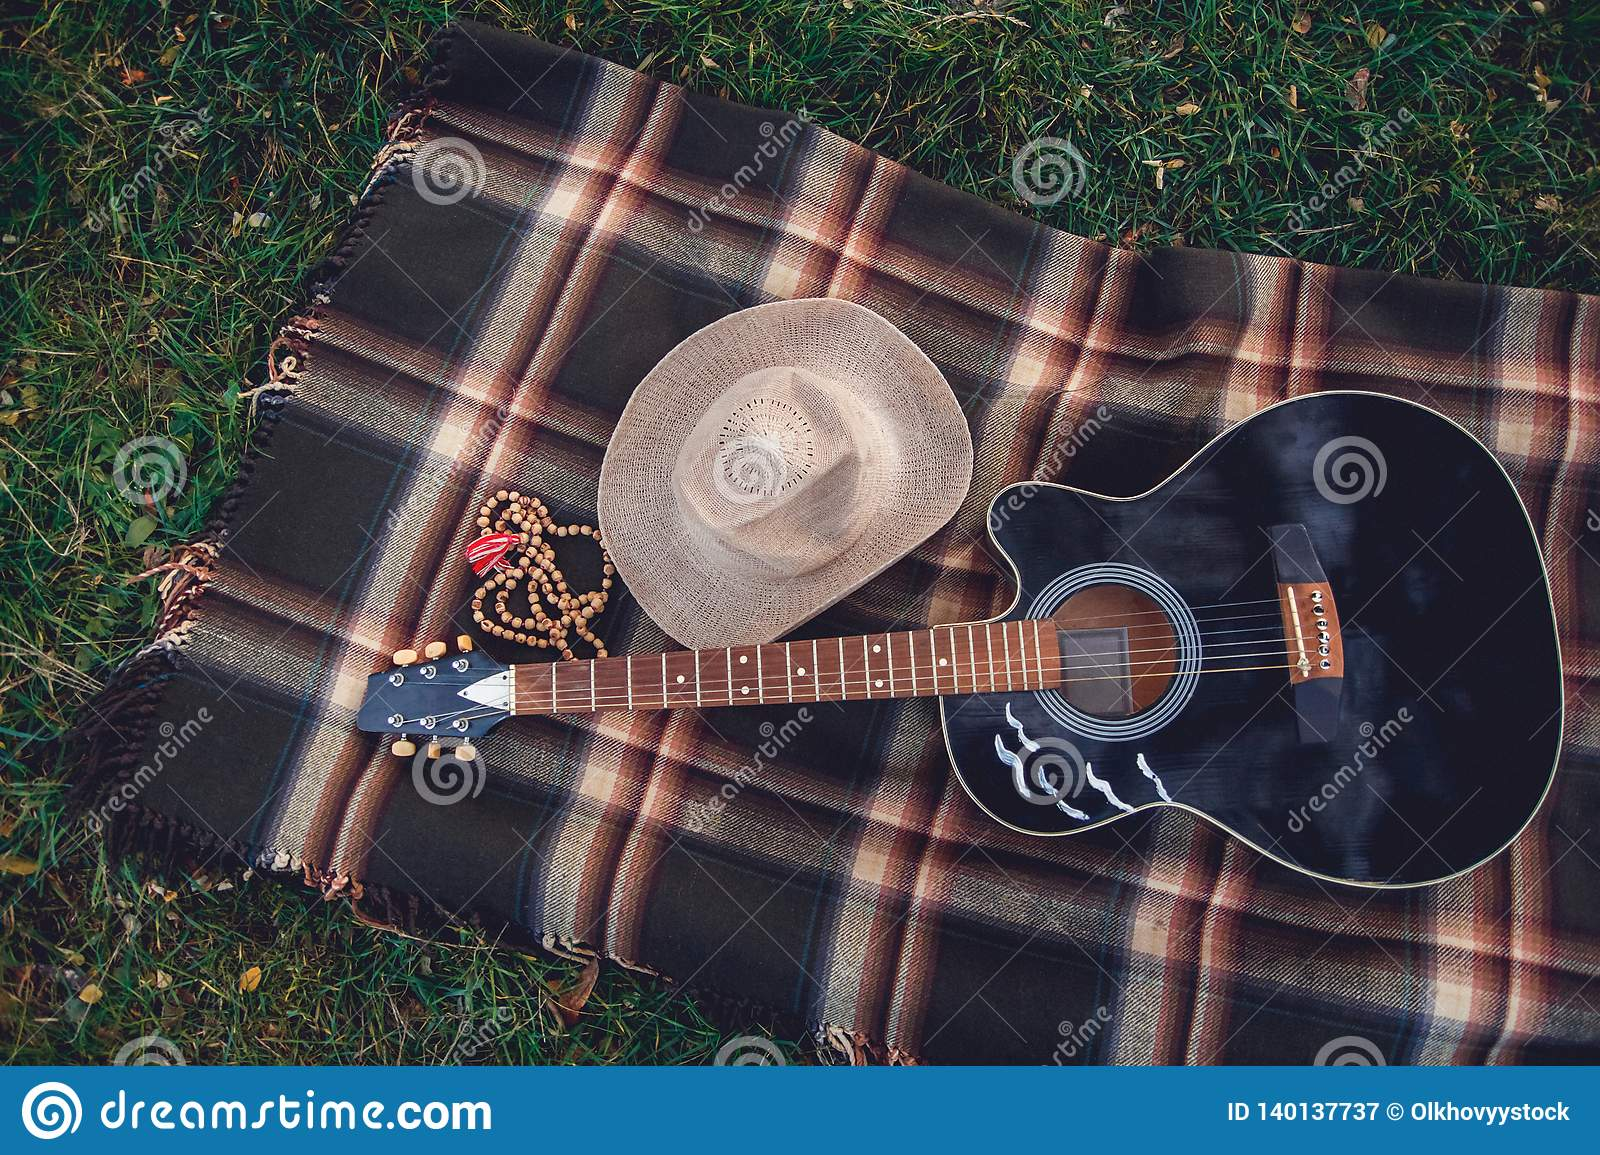 Guitar, basket, sandwiches, plaid and juice in a blossoming garden. Vintage tender background. Romance, love, date